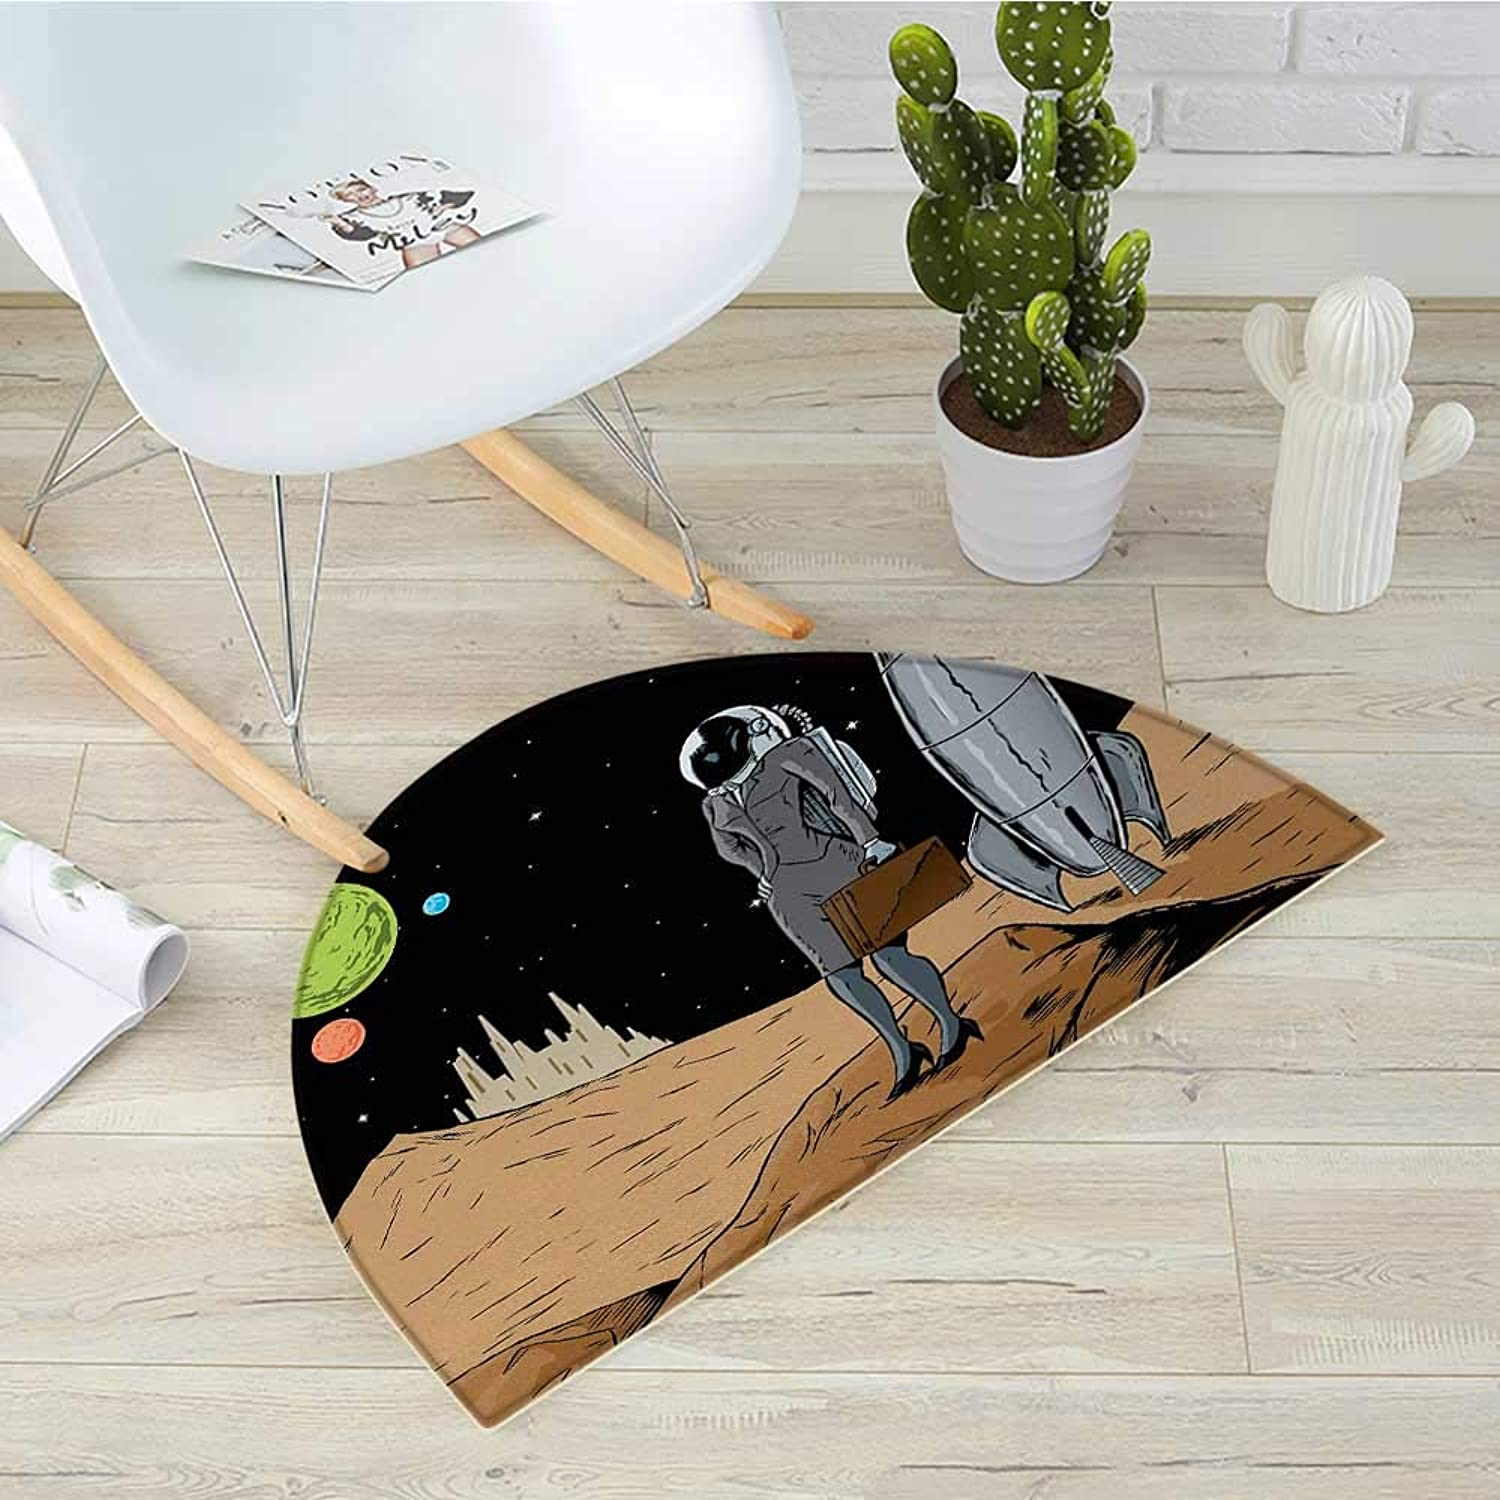 Astronaut Half Round Door mats Business Woman in Space Briefcase Buying and Selling on Alien Planet Bathroom Mat H 31.5  xD 47.2  Black Brown Multicolor